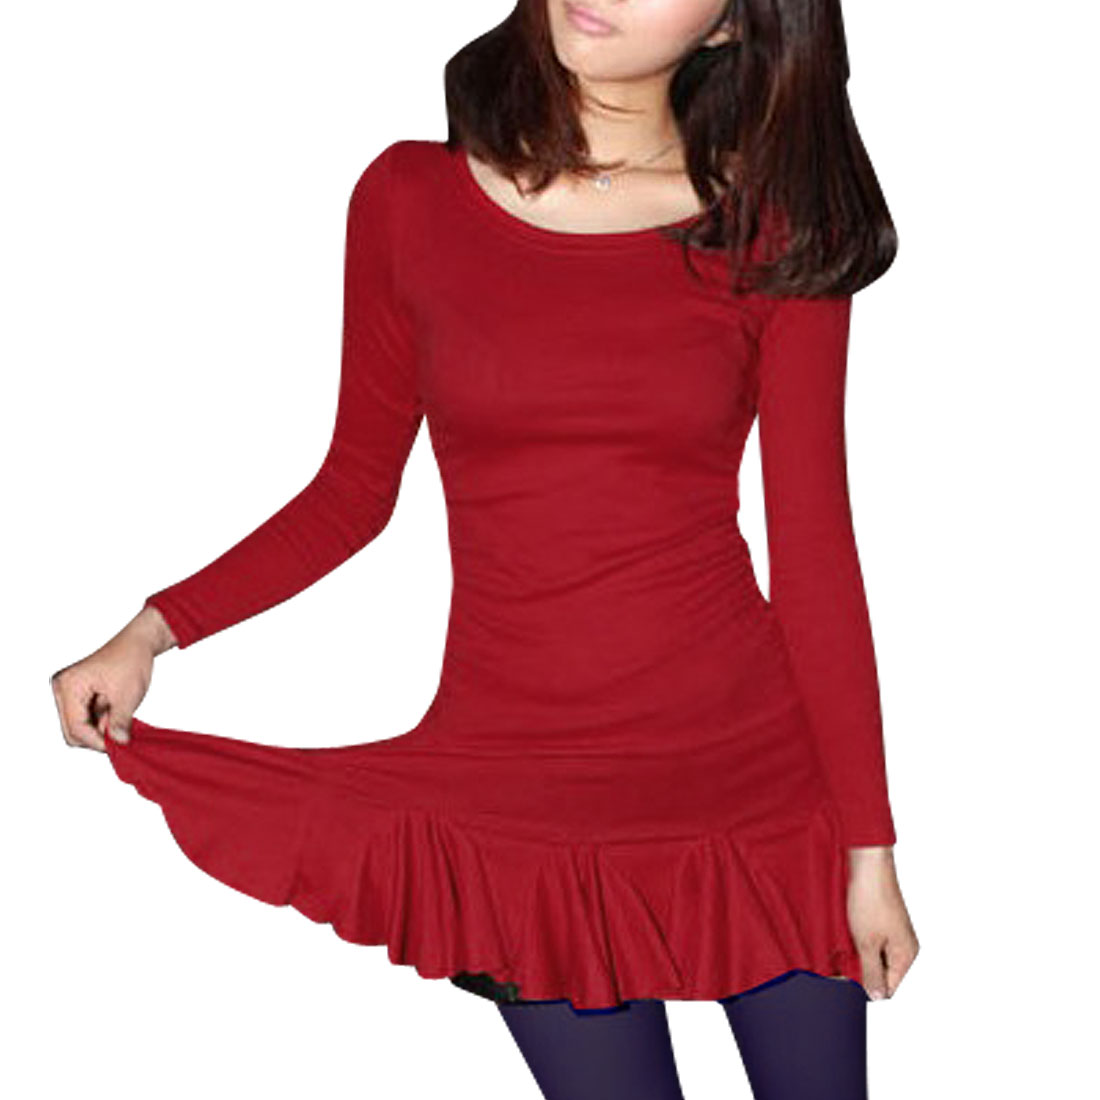 Red Pullover Long Sleeve Ruffled Hem Mini Dress XS for Women